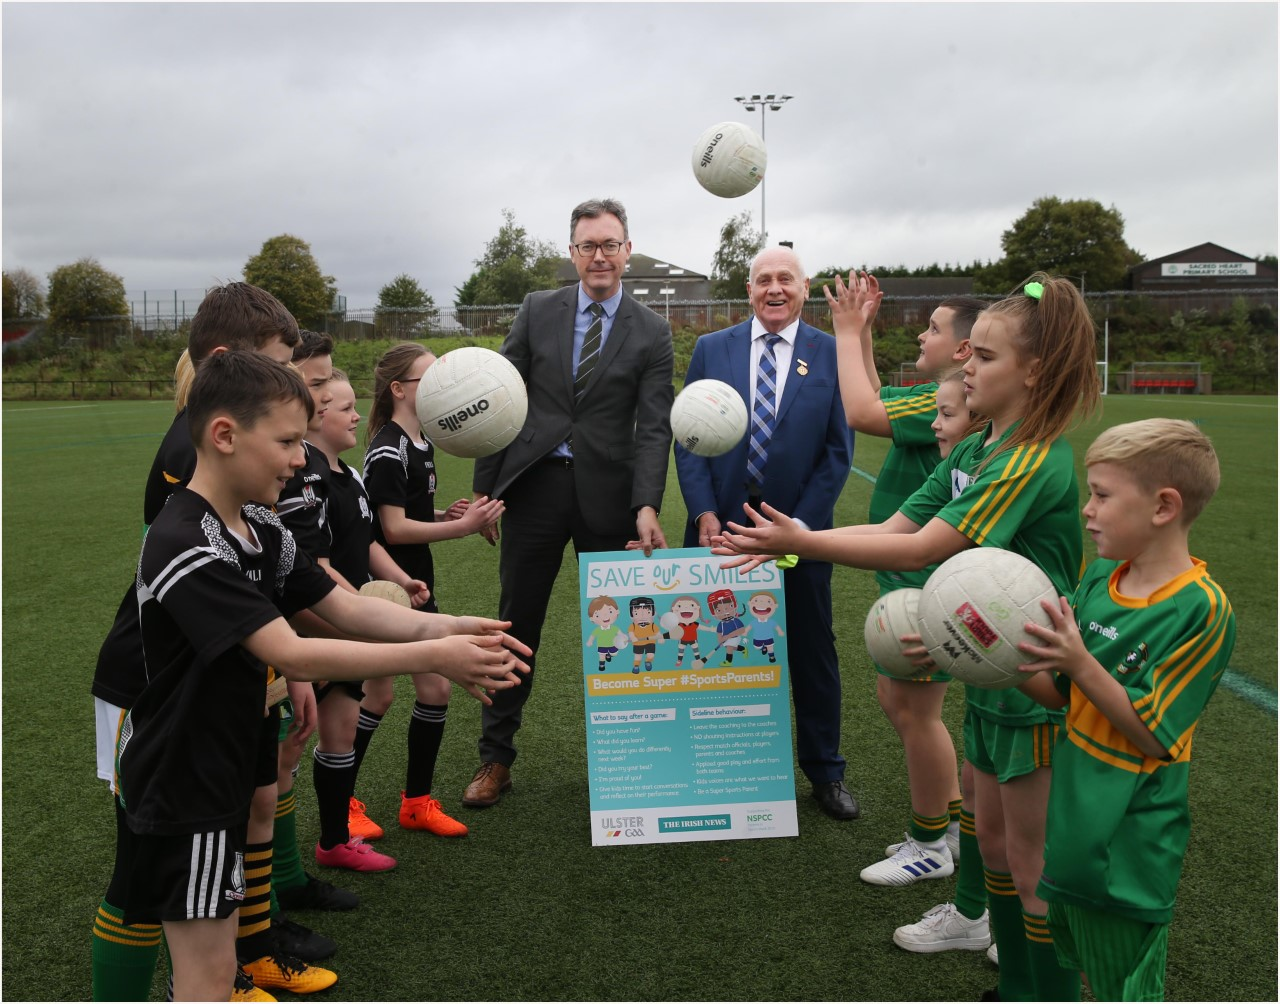 'Save our Smiles' launched to promote the important role parents play in clubs